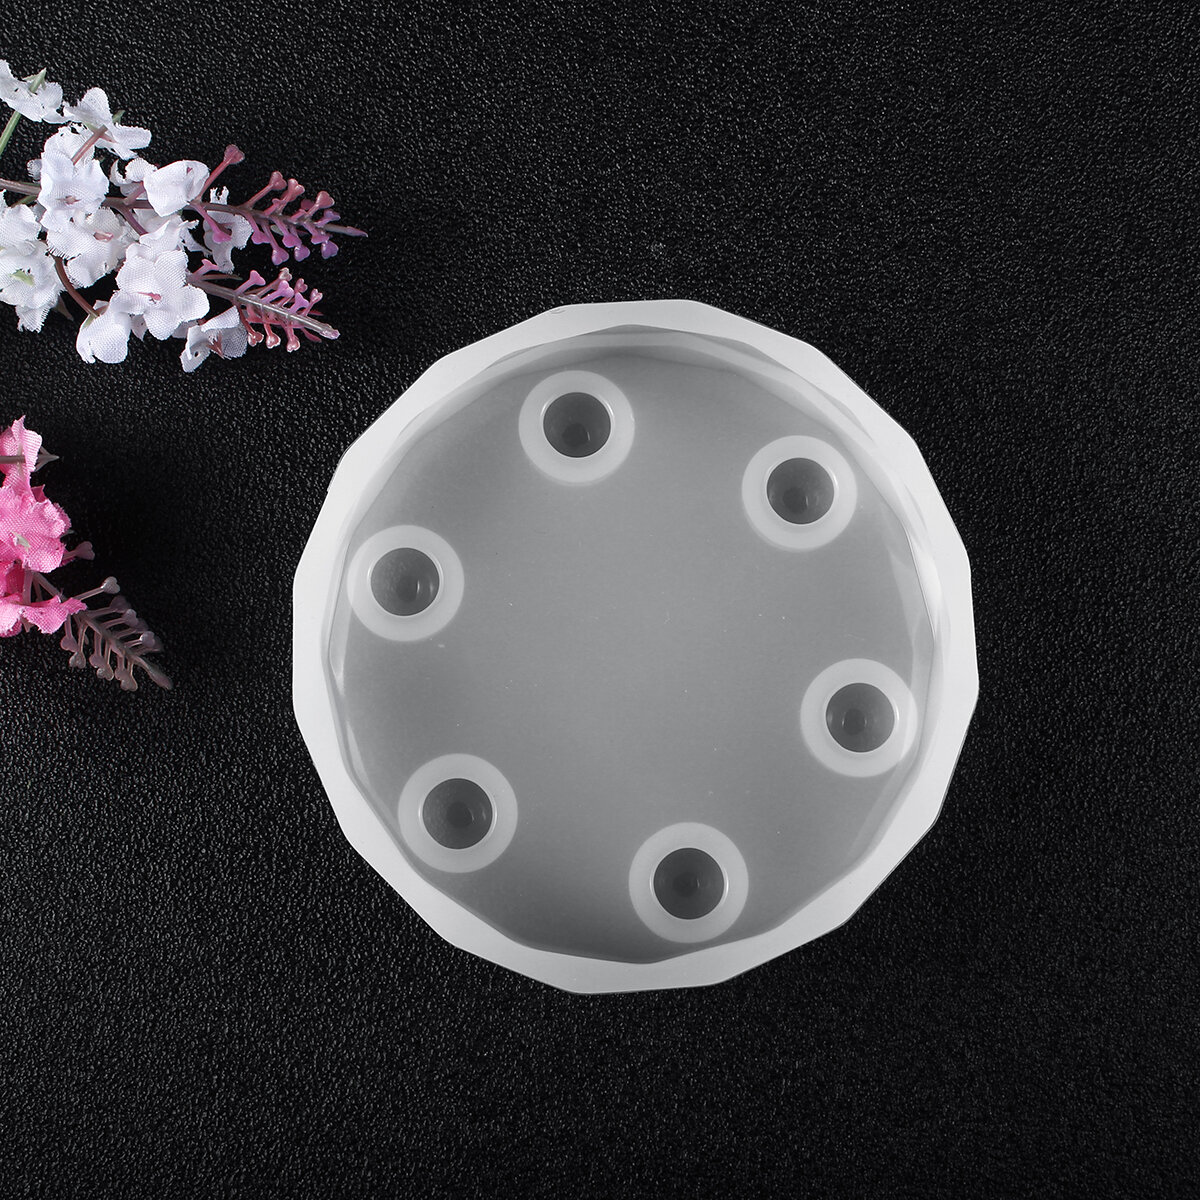 Handmade DIY Resin Casting Molds Silicone Table Mold Craft Making Mould Tool Kit